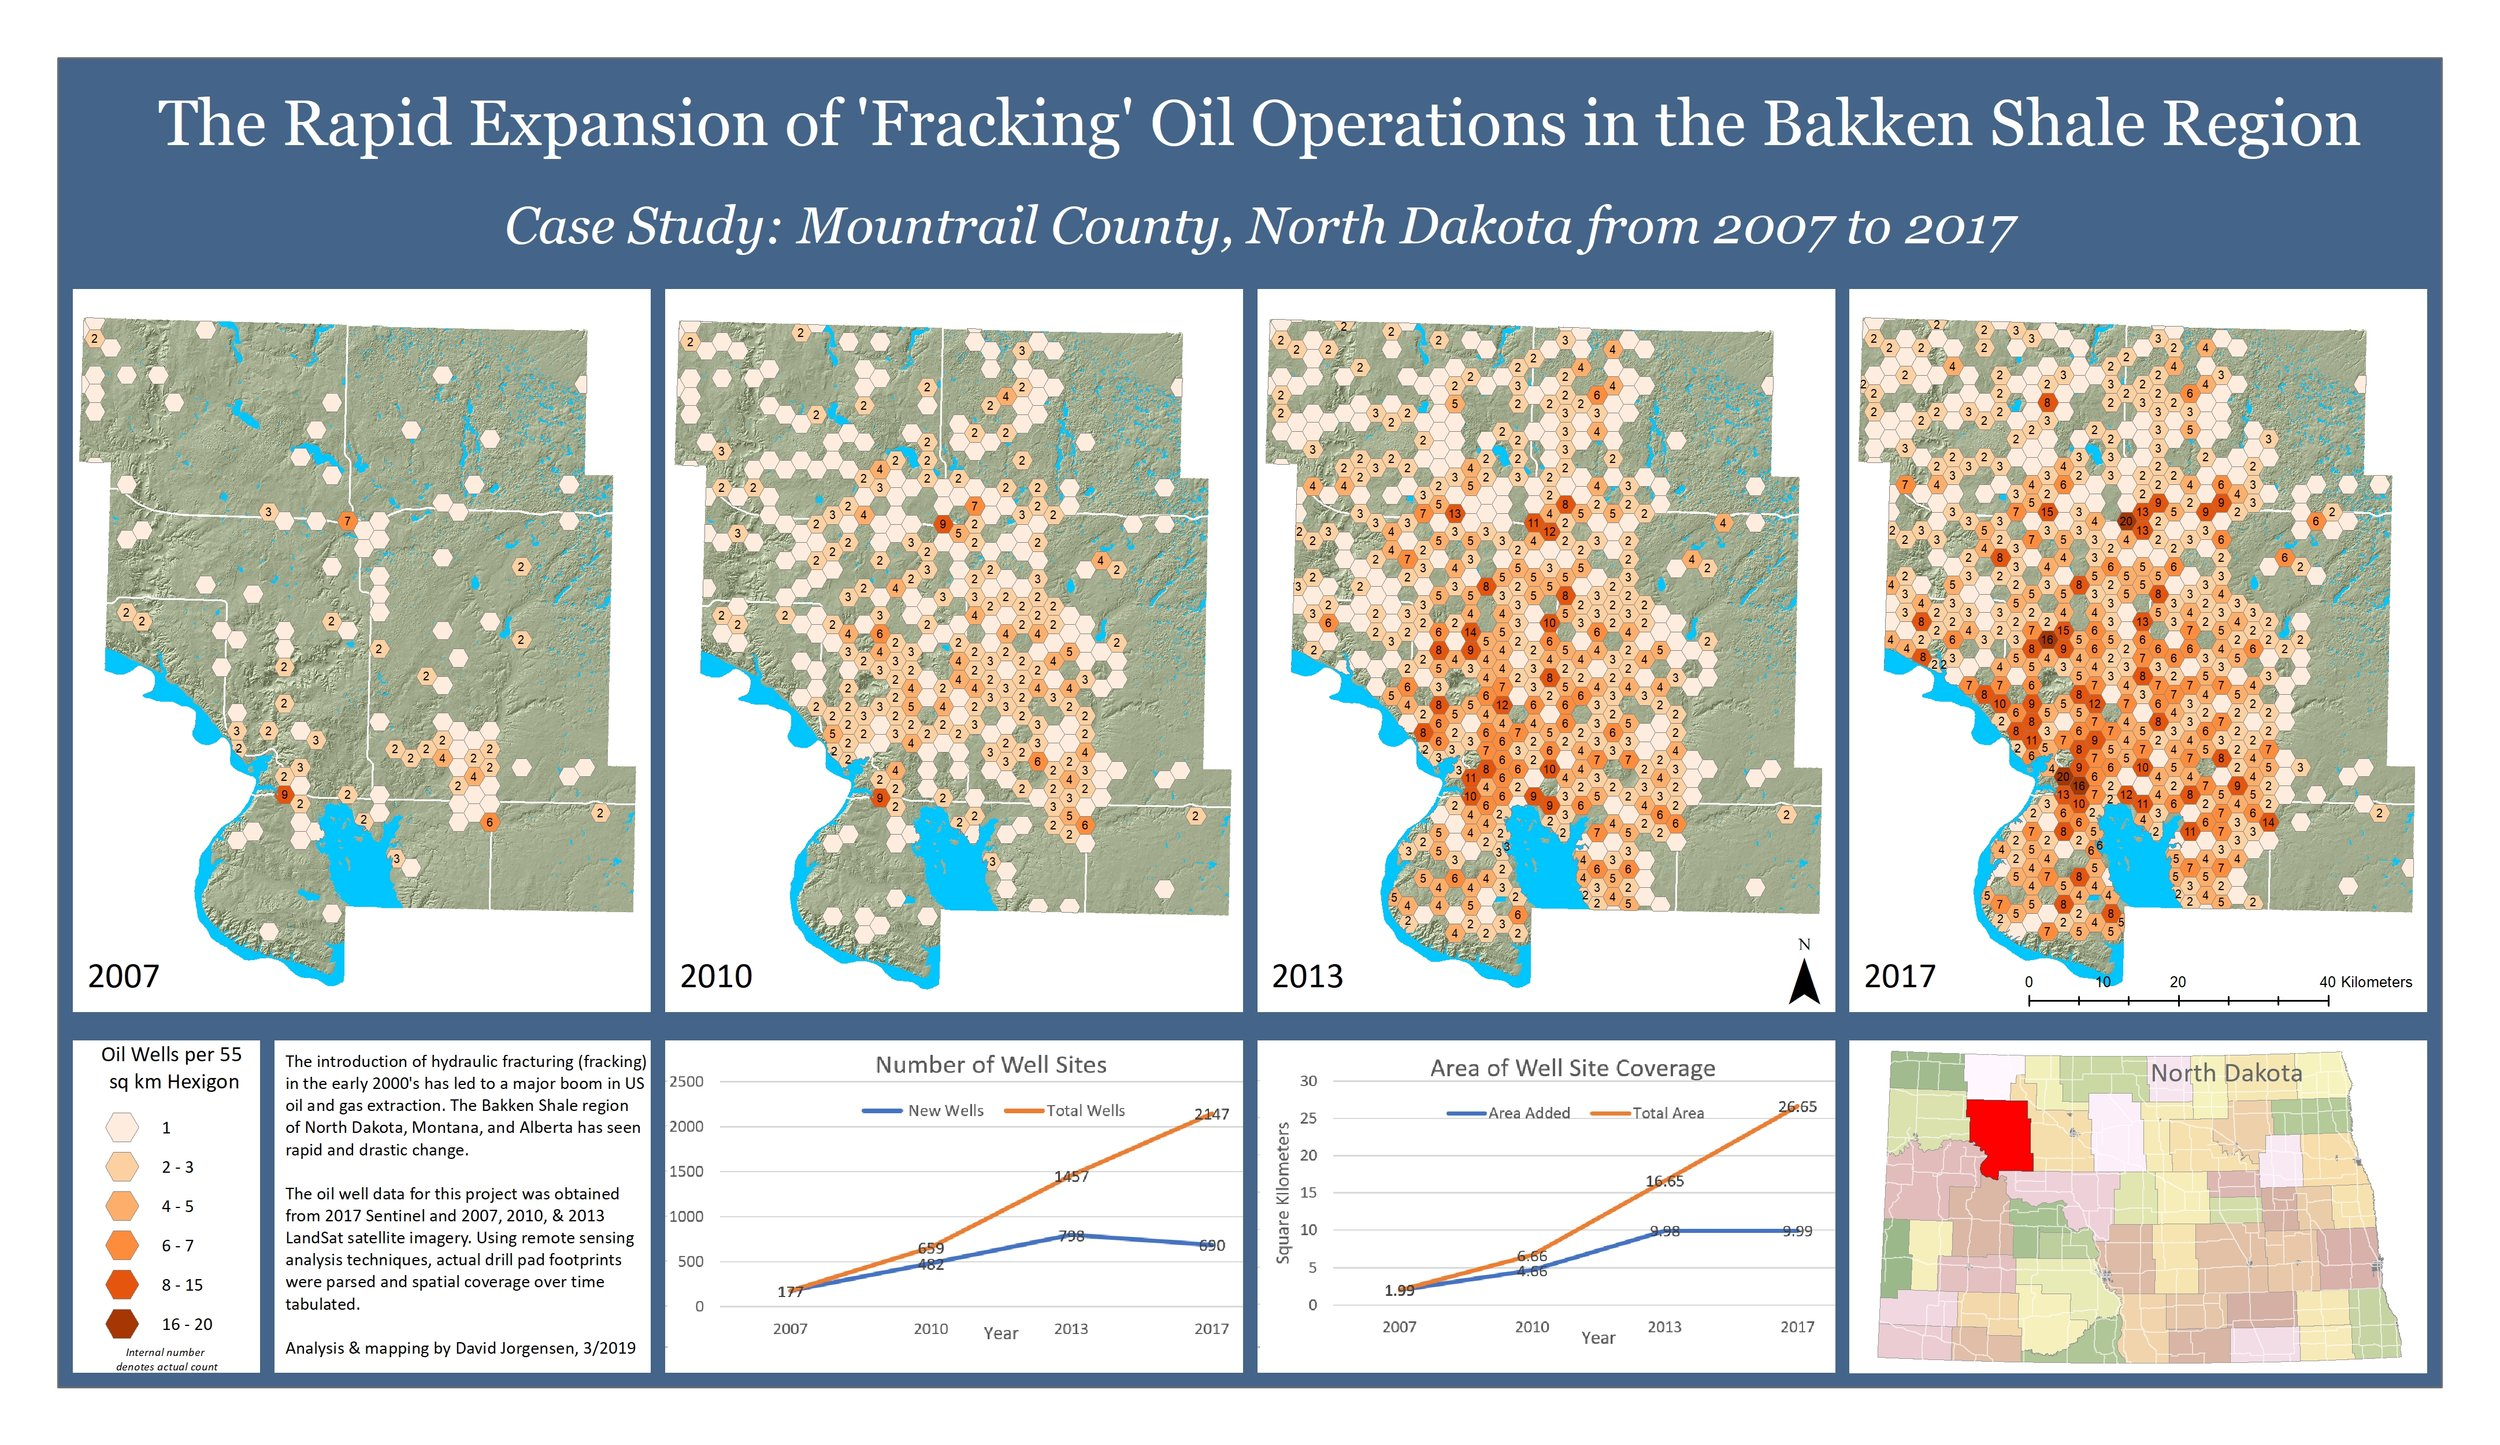 Tracking the Growth of Oil Drilling with Remote Sensing - Using satellite imagery to identify and track the growth of 'Fracking' operations in North Dakota's Bakken Shale region over a decade.